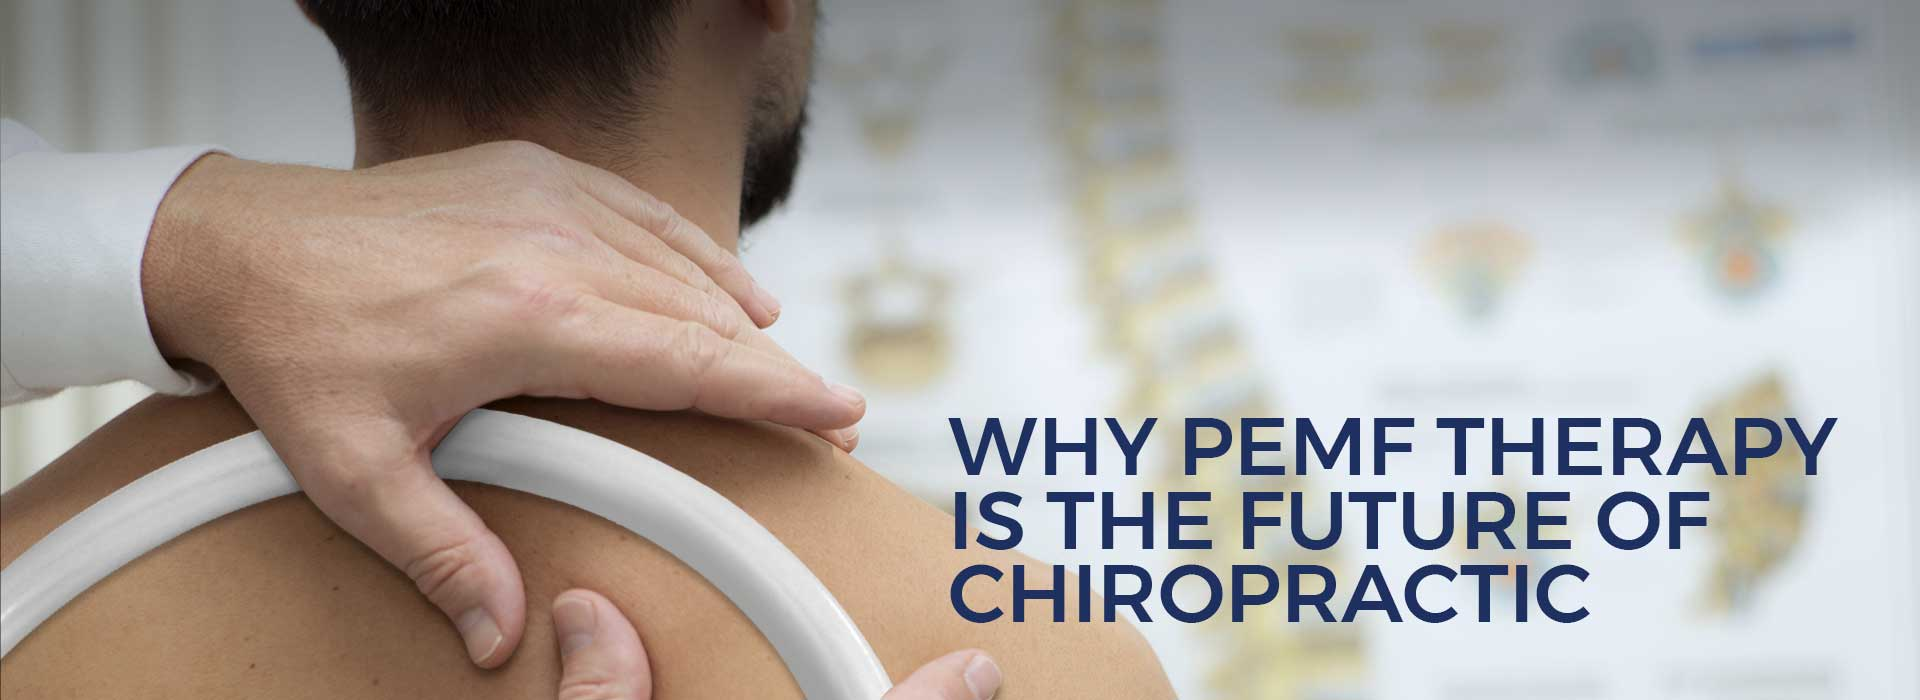 Why PEMF Therapy is the Future of Chiropractic